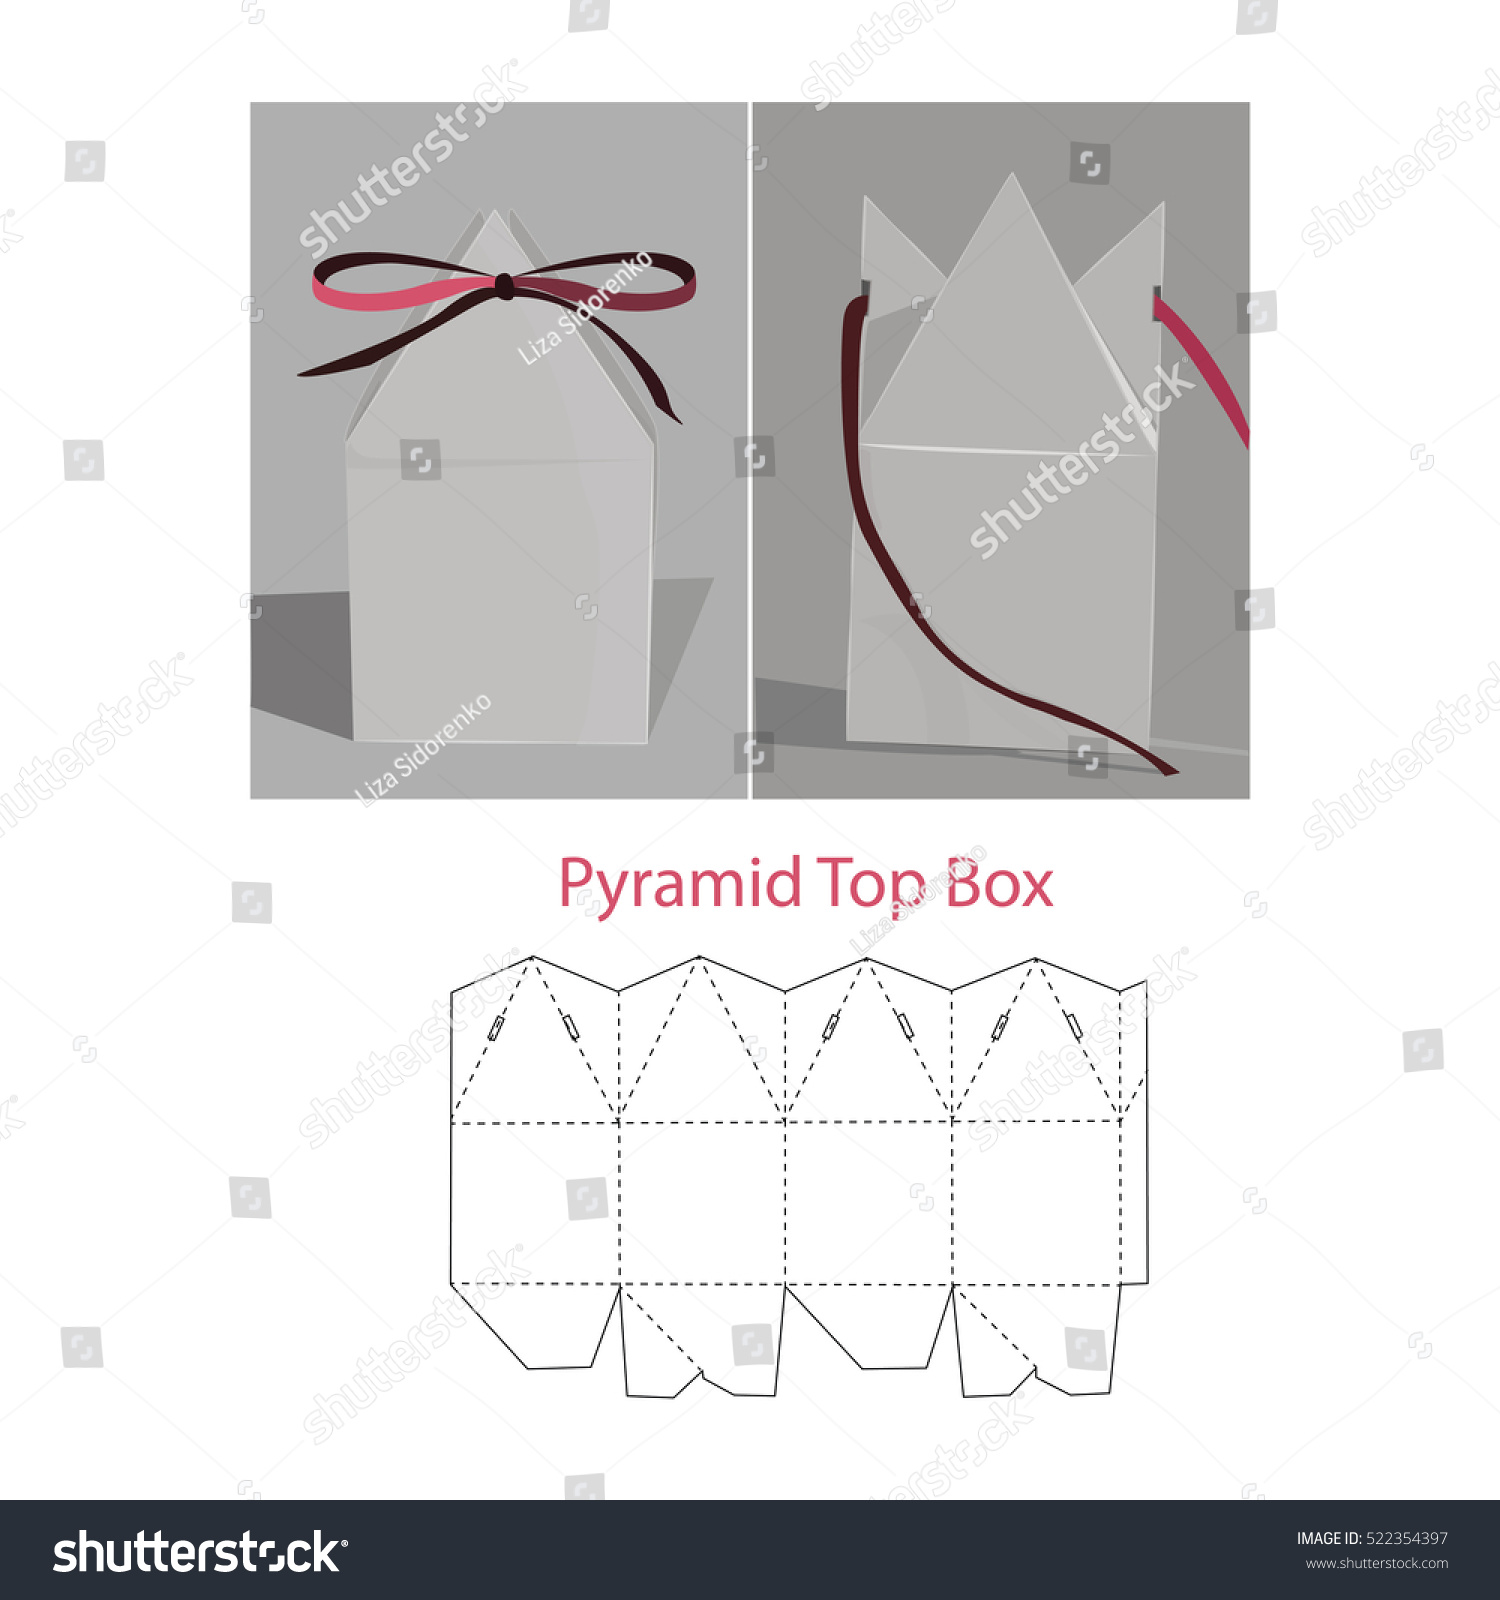 Pyramid Top Box Stock Vector 522354397 - Shutterstock